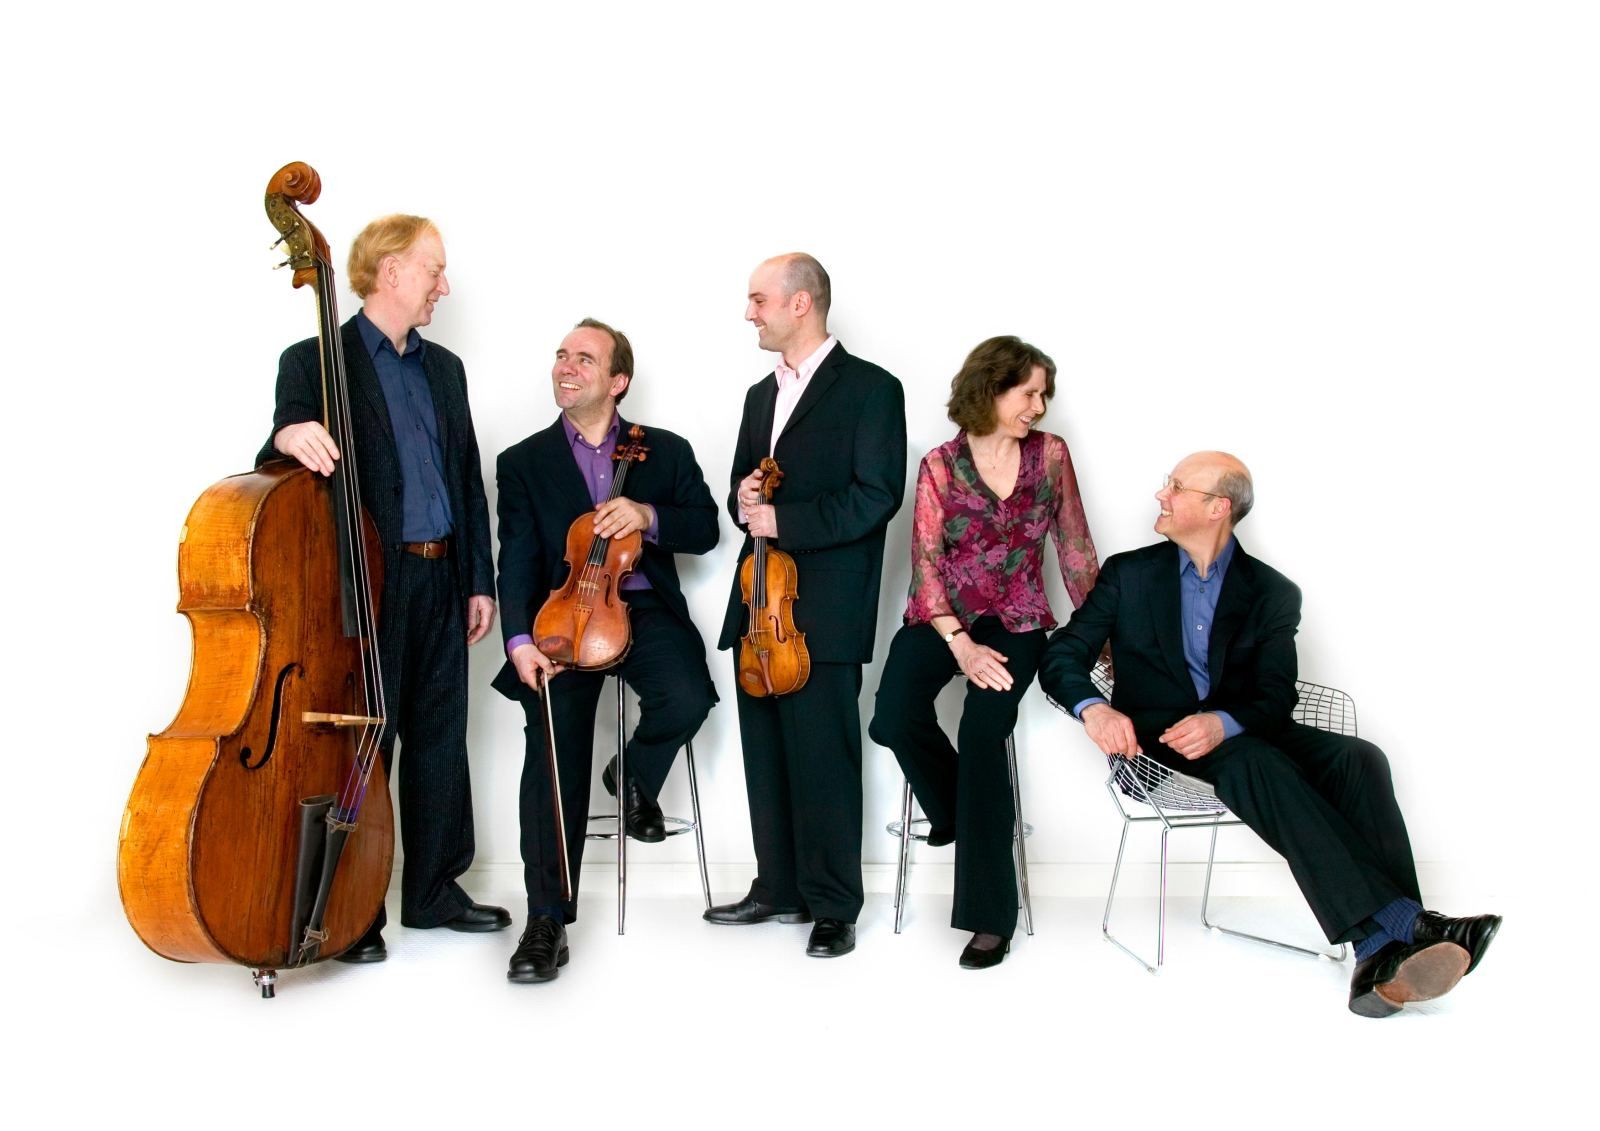 The Schubert Ensemble: photo credit John Clark